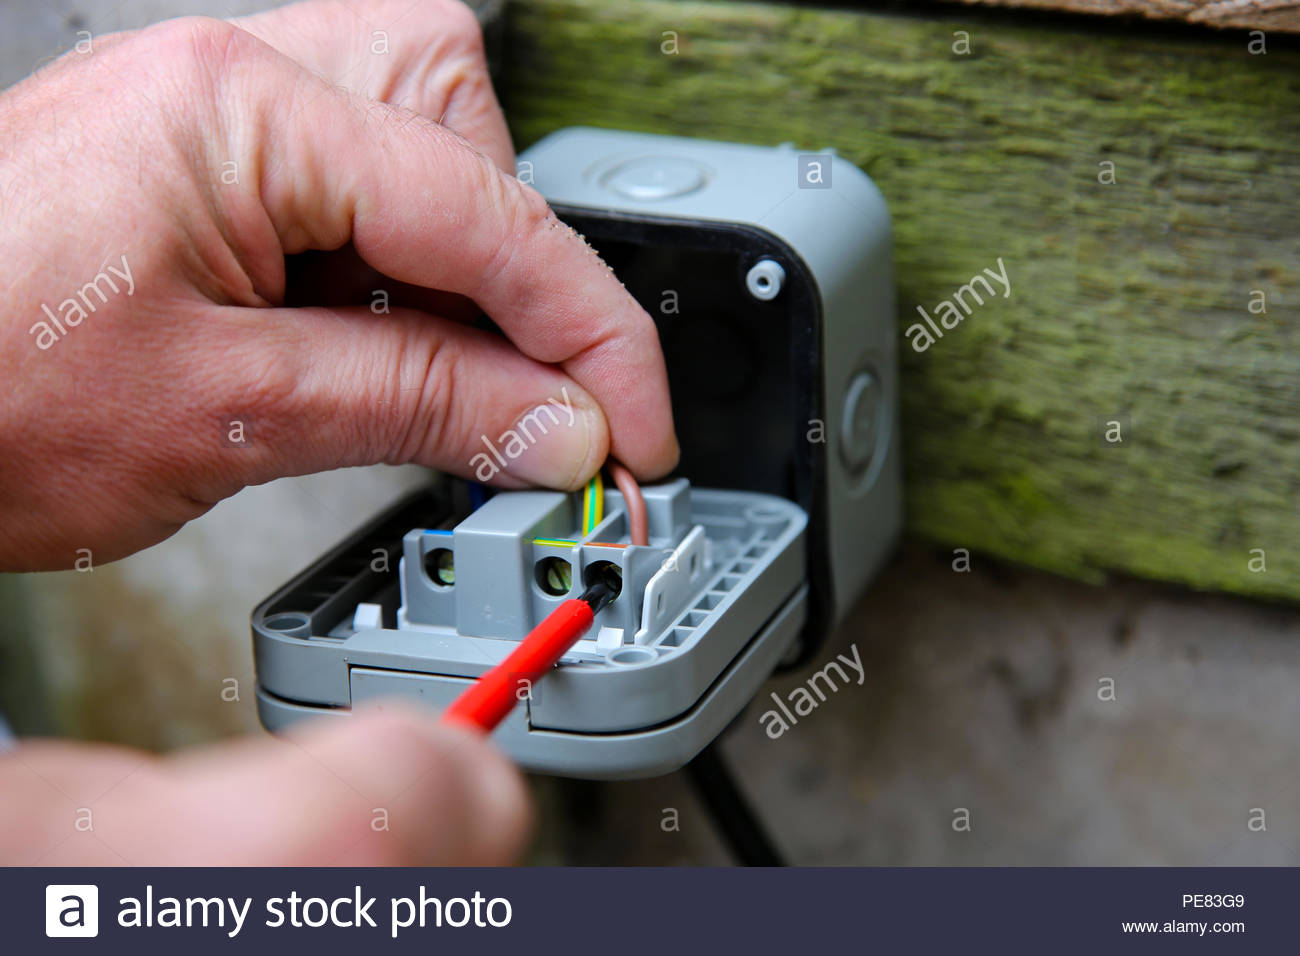 Peachy Man Wiring An Electric Socket Using An Electrical Screwdriver Wiring Cloud Mangdienstapotheekhoekschewaardnl